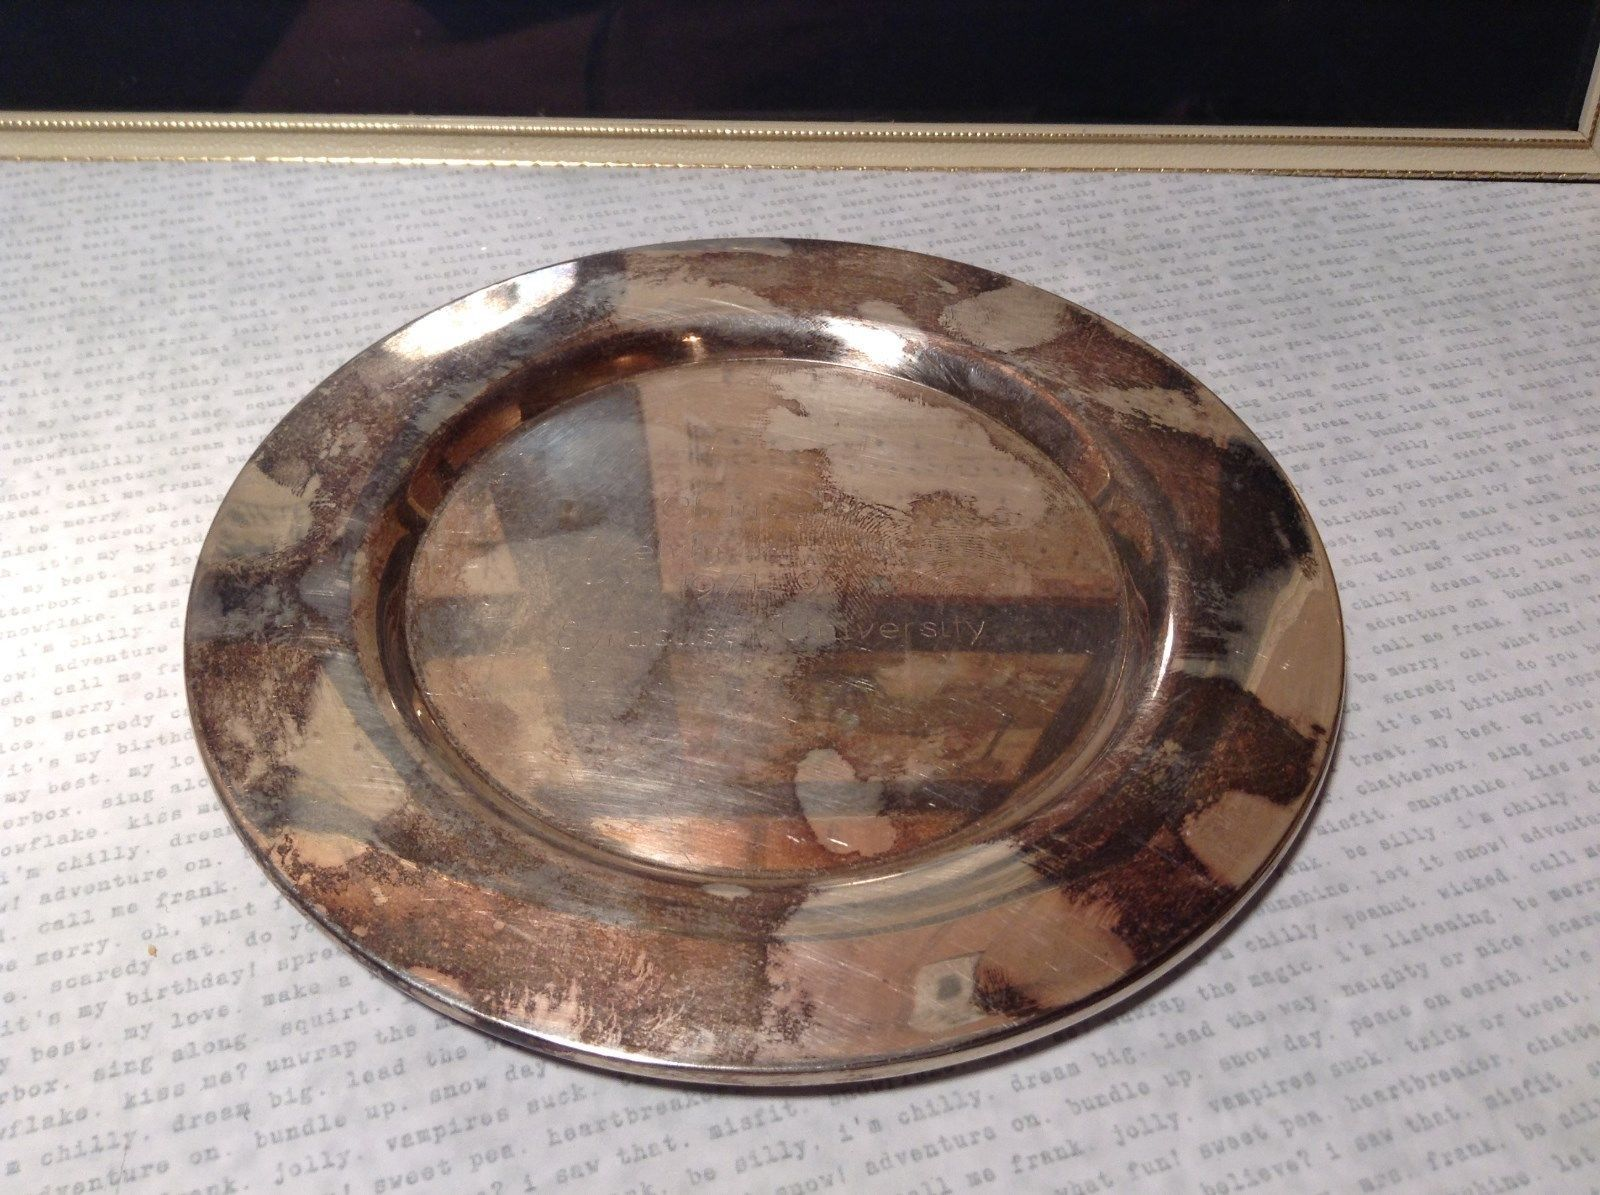 Silver Oneida Plate Chancellor Melvin A. Eggers 1971 to 1991 Syracuse University